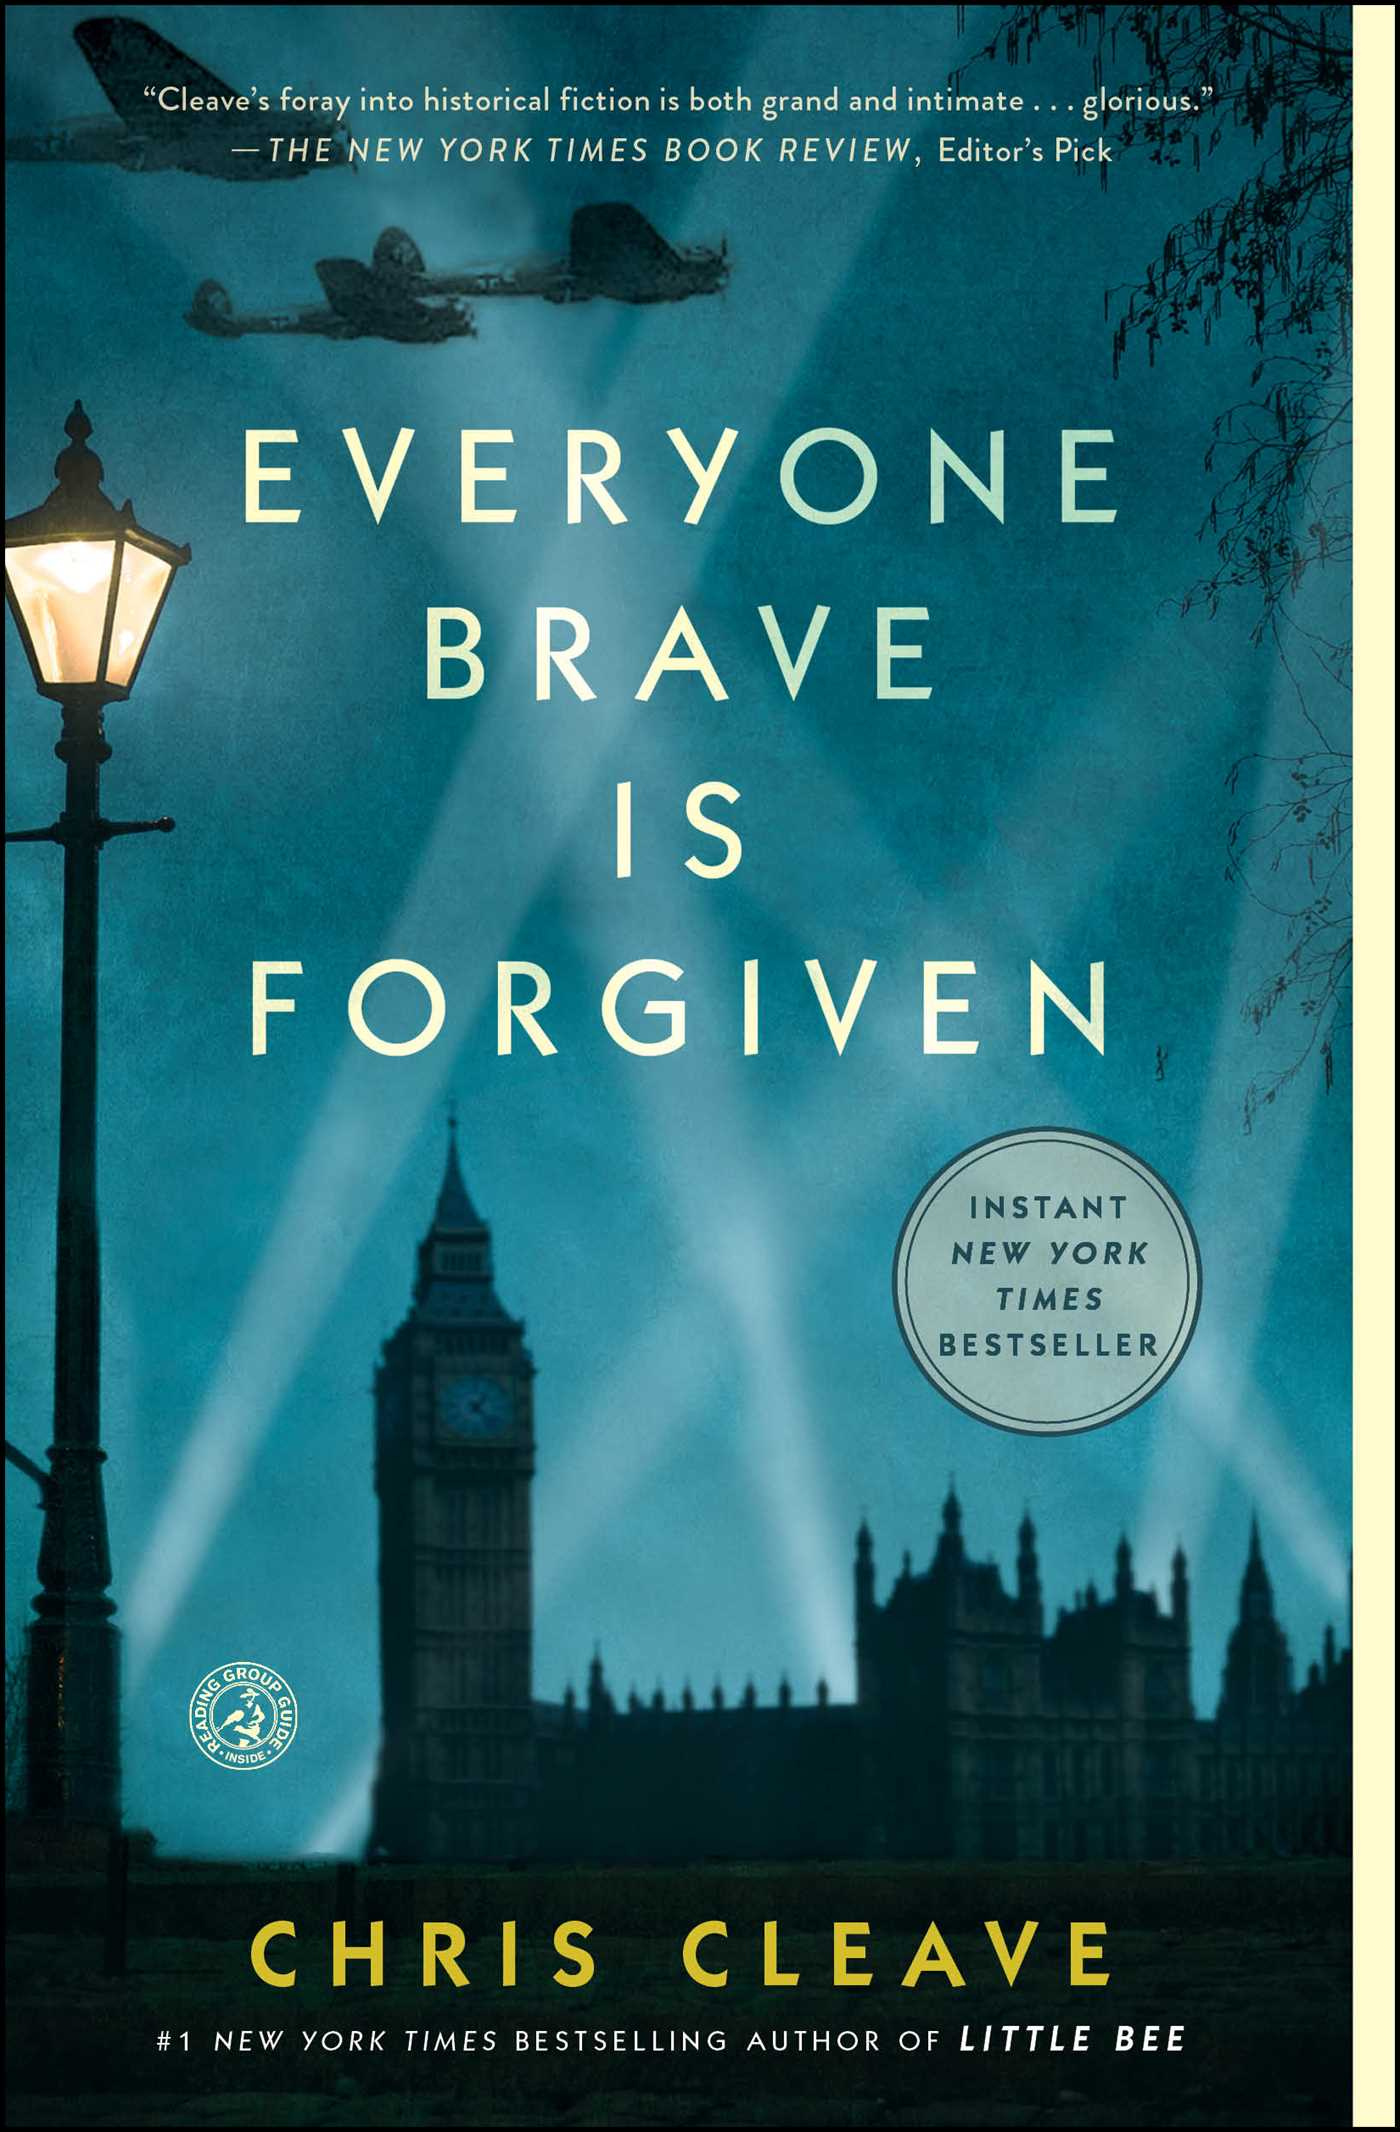 everyone brave is forgiven by Chris Cleave